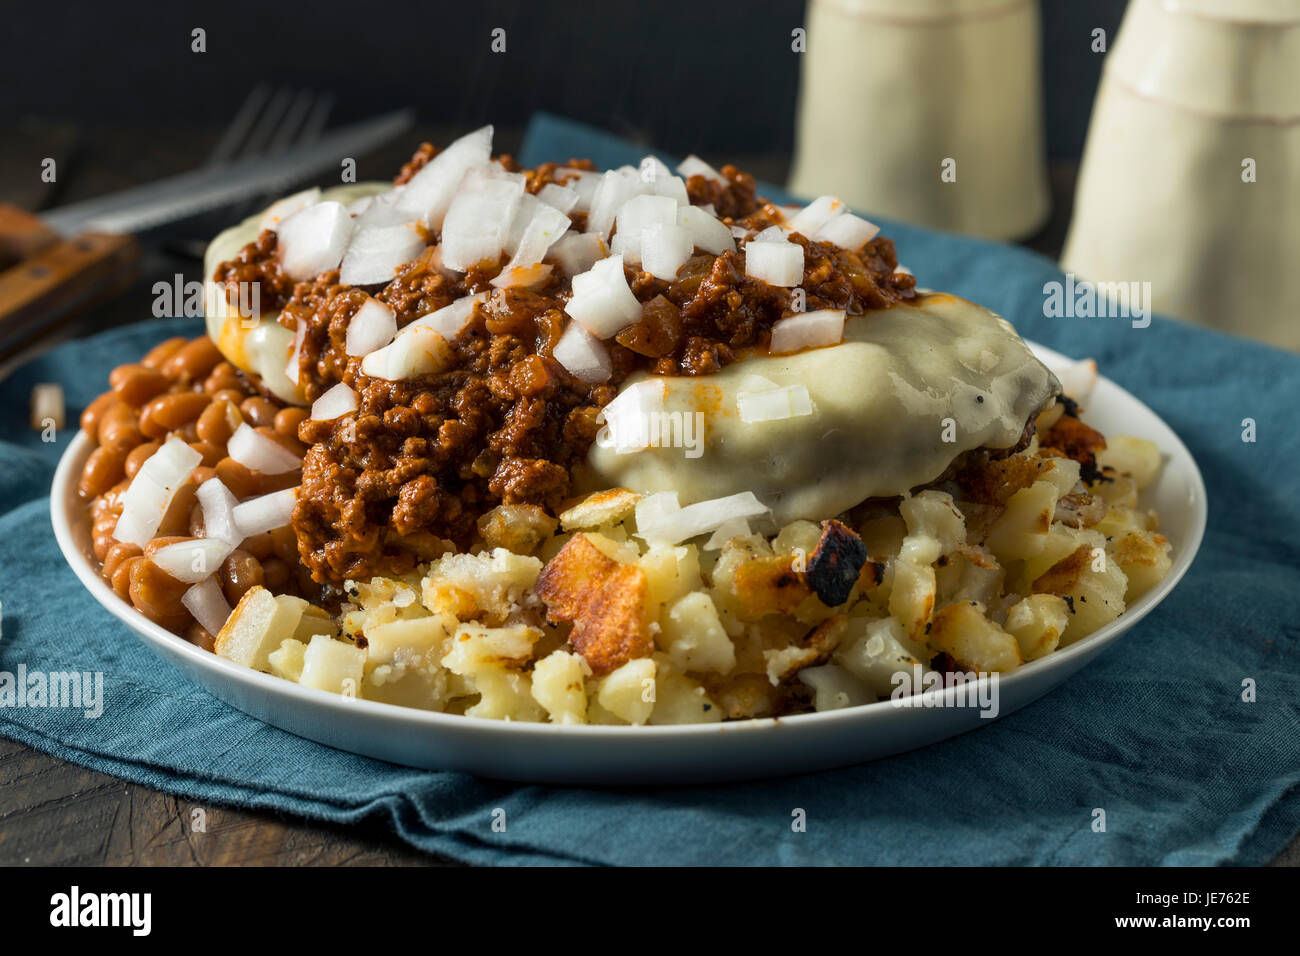 Unhealthy Homemade Beef Garbage Trash Plate with Potatoes Beans Macaroni Salad and Cheeseburgers - Stock Image